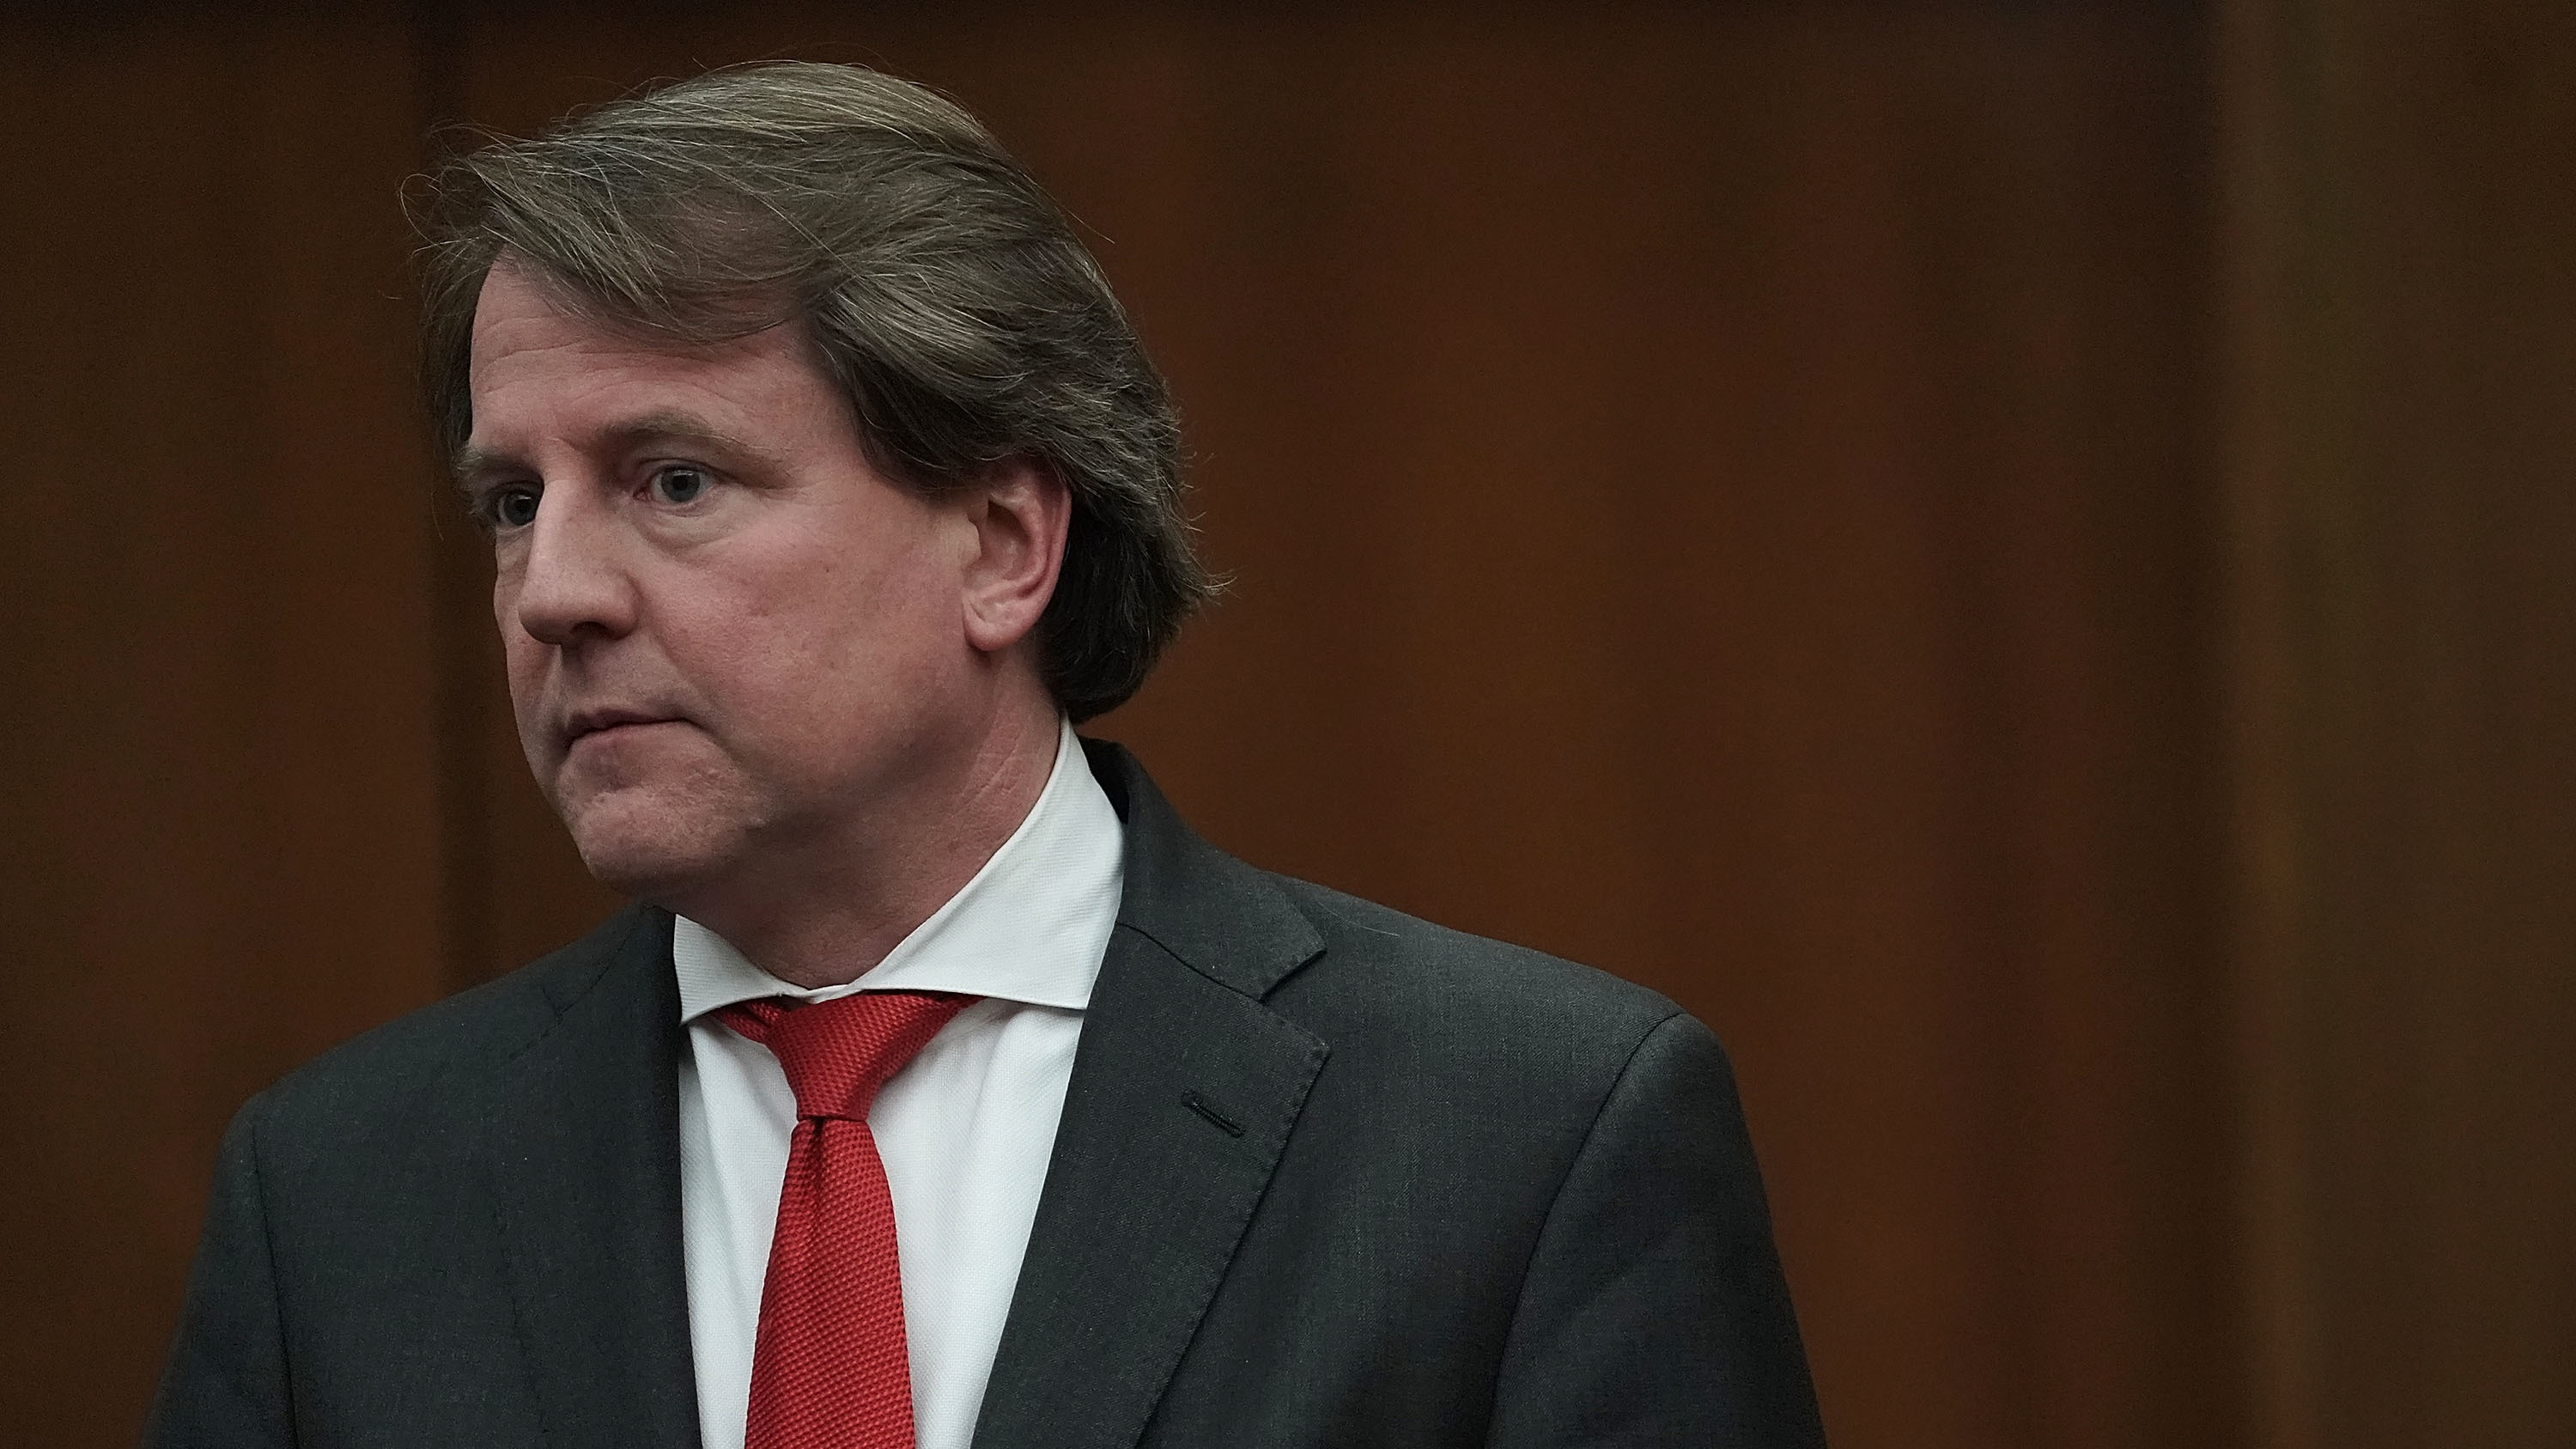 White House 'Directed' Ex-Counsel McGahn Not To Comply With Congressional Subpoena